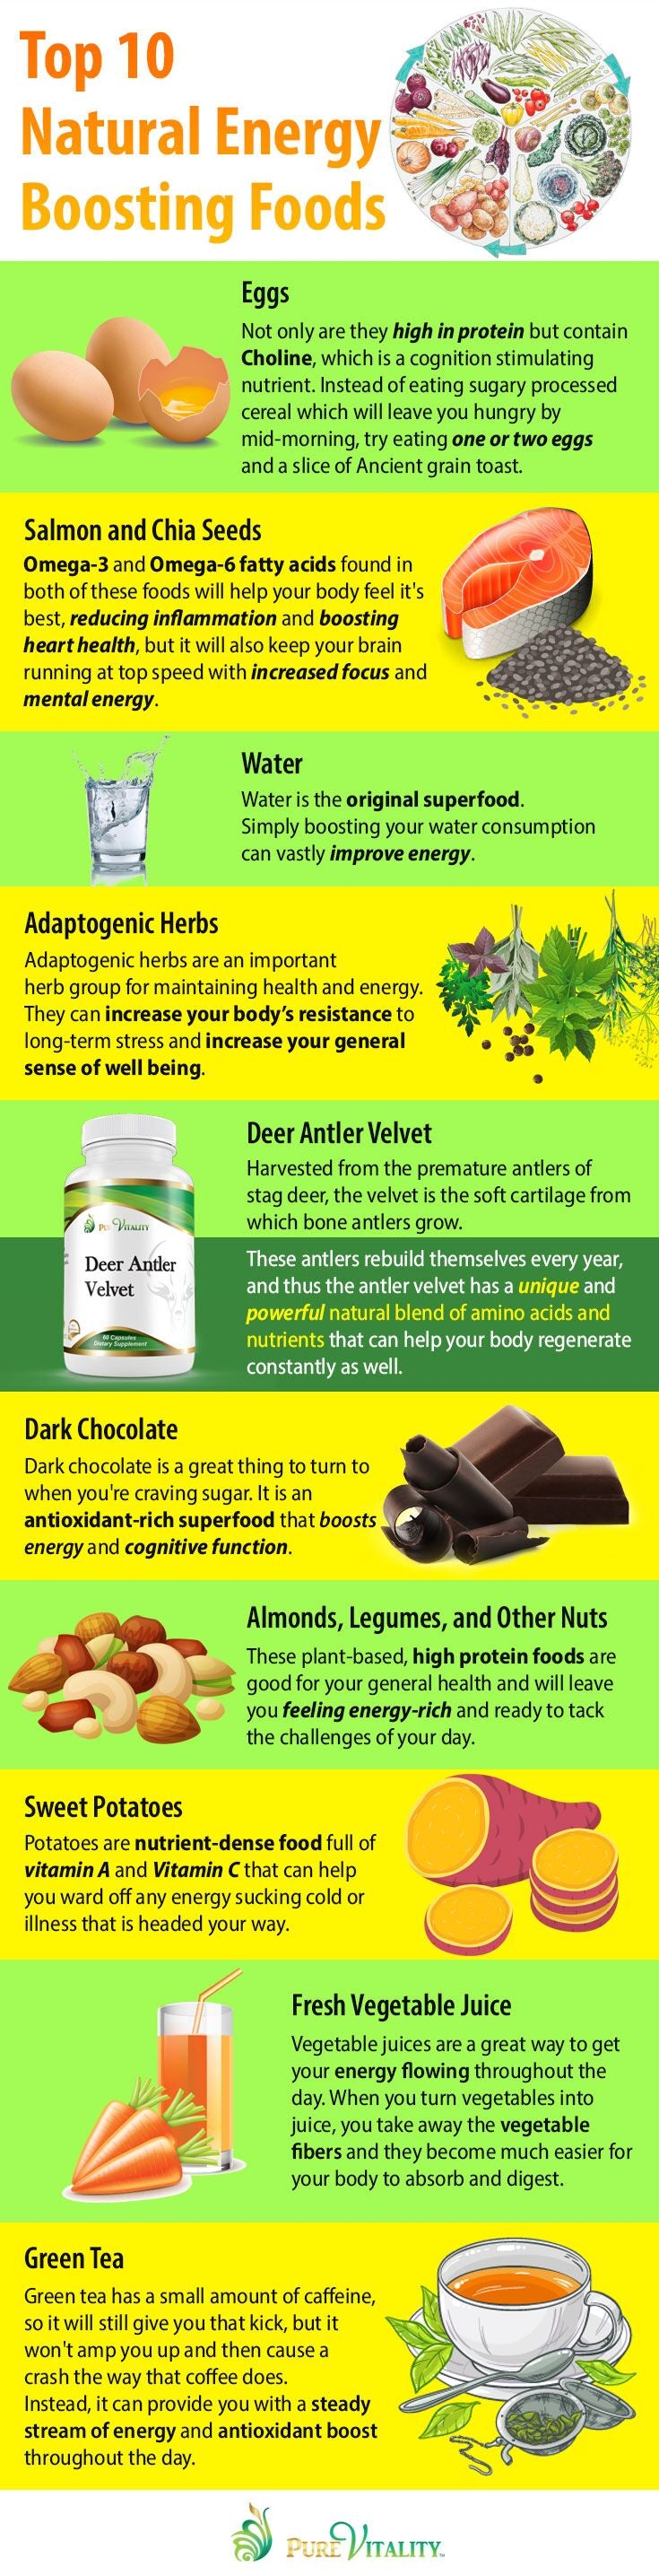 Top 10 Natural Energy Boosting Foods